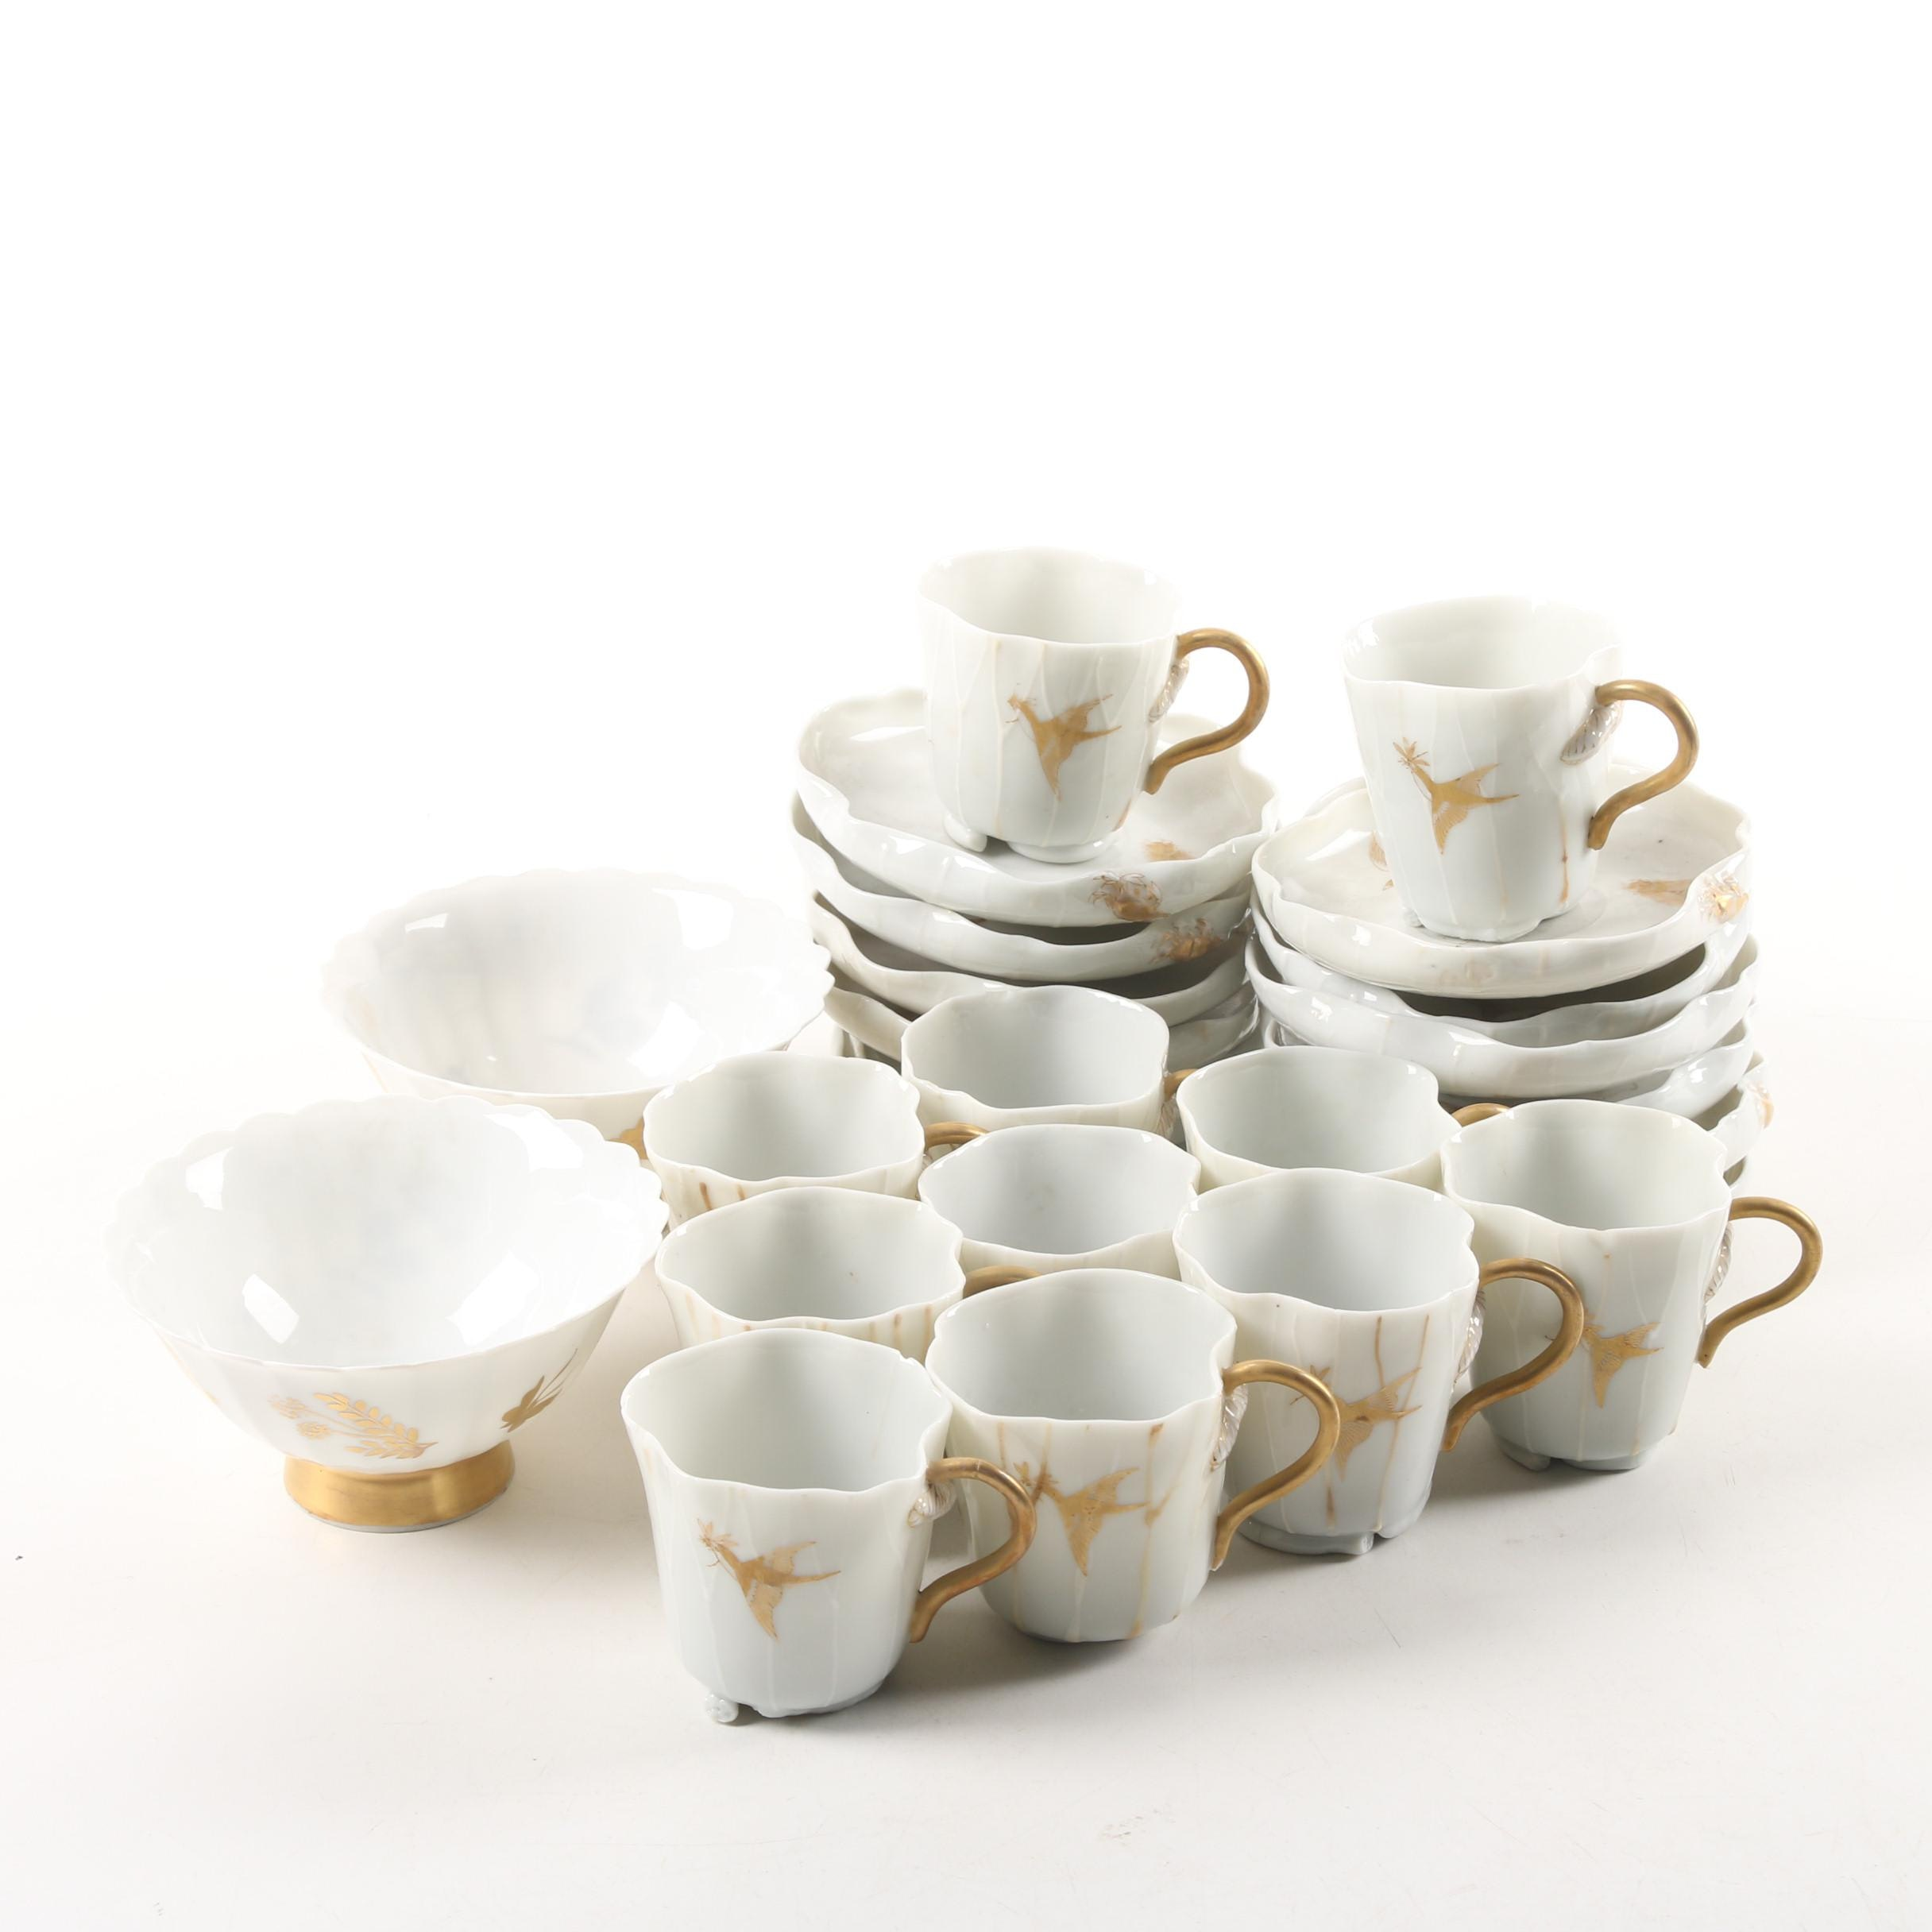 Vintage Handcrafted Porcelain Cups, Saucers, and Footed Bowls